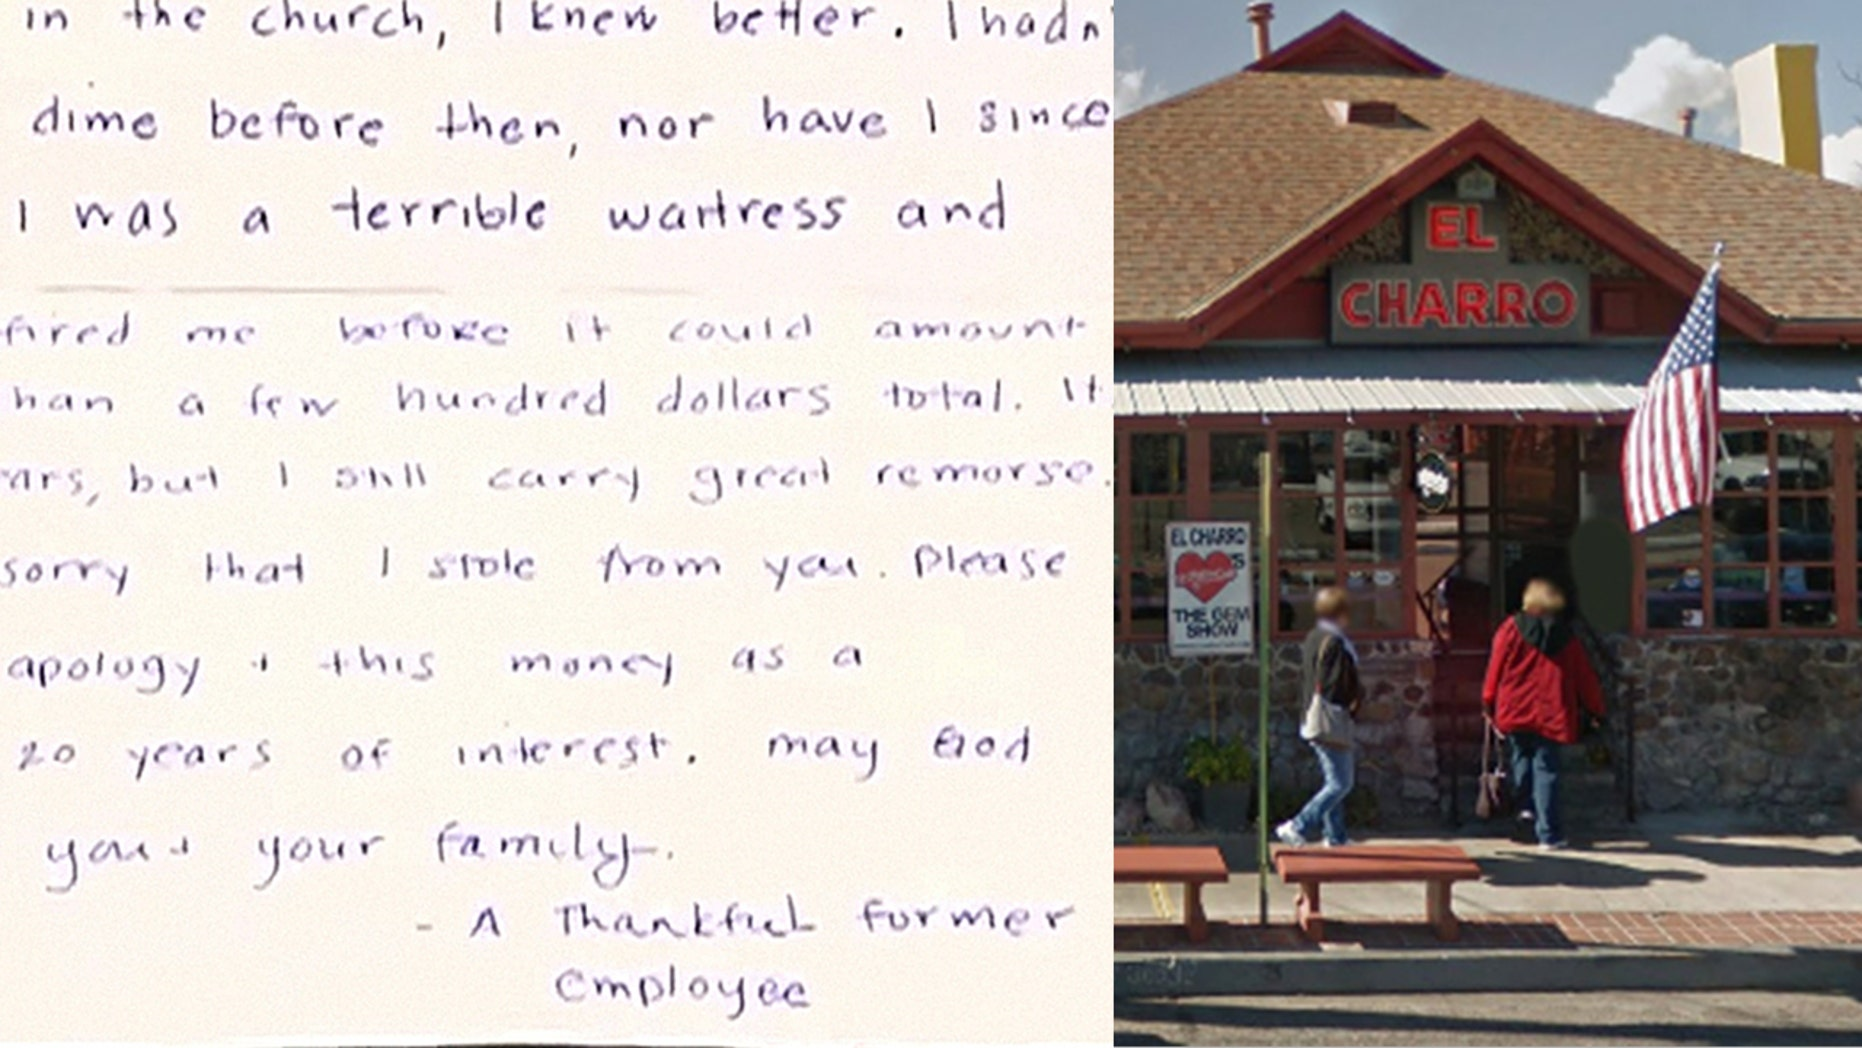 The Flores family received an apology note and $1,000 in cash in the mail from a former staffer.